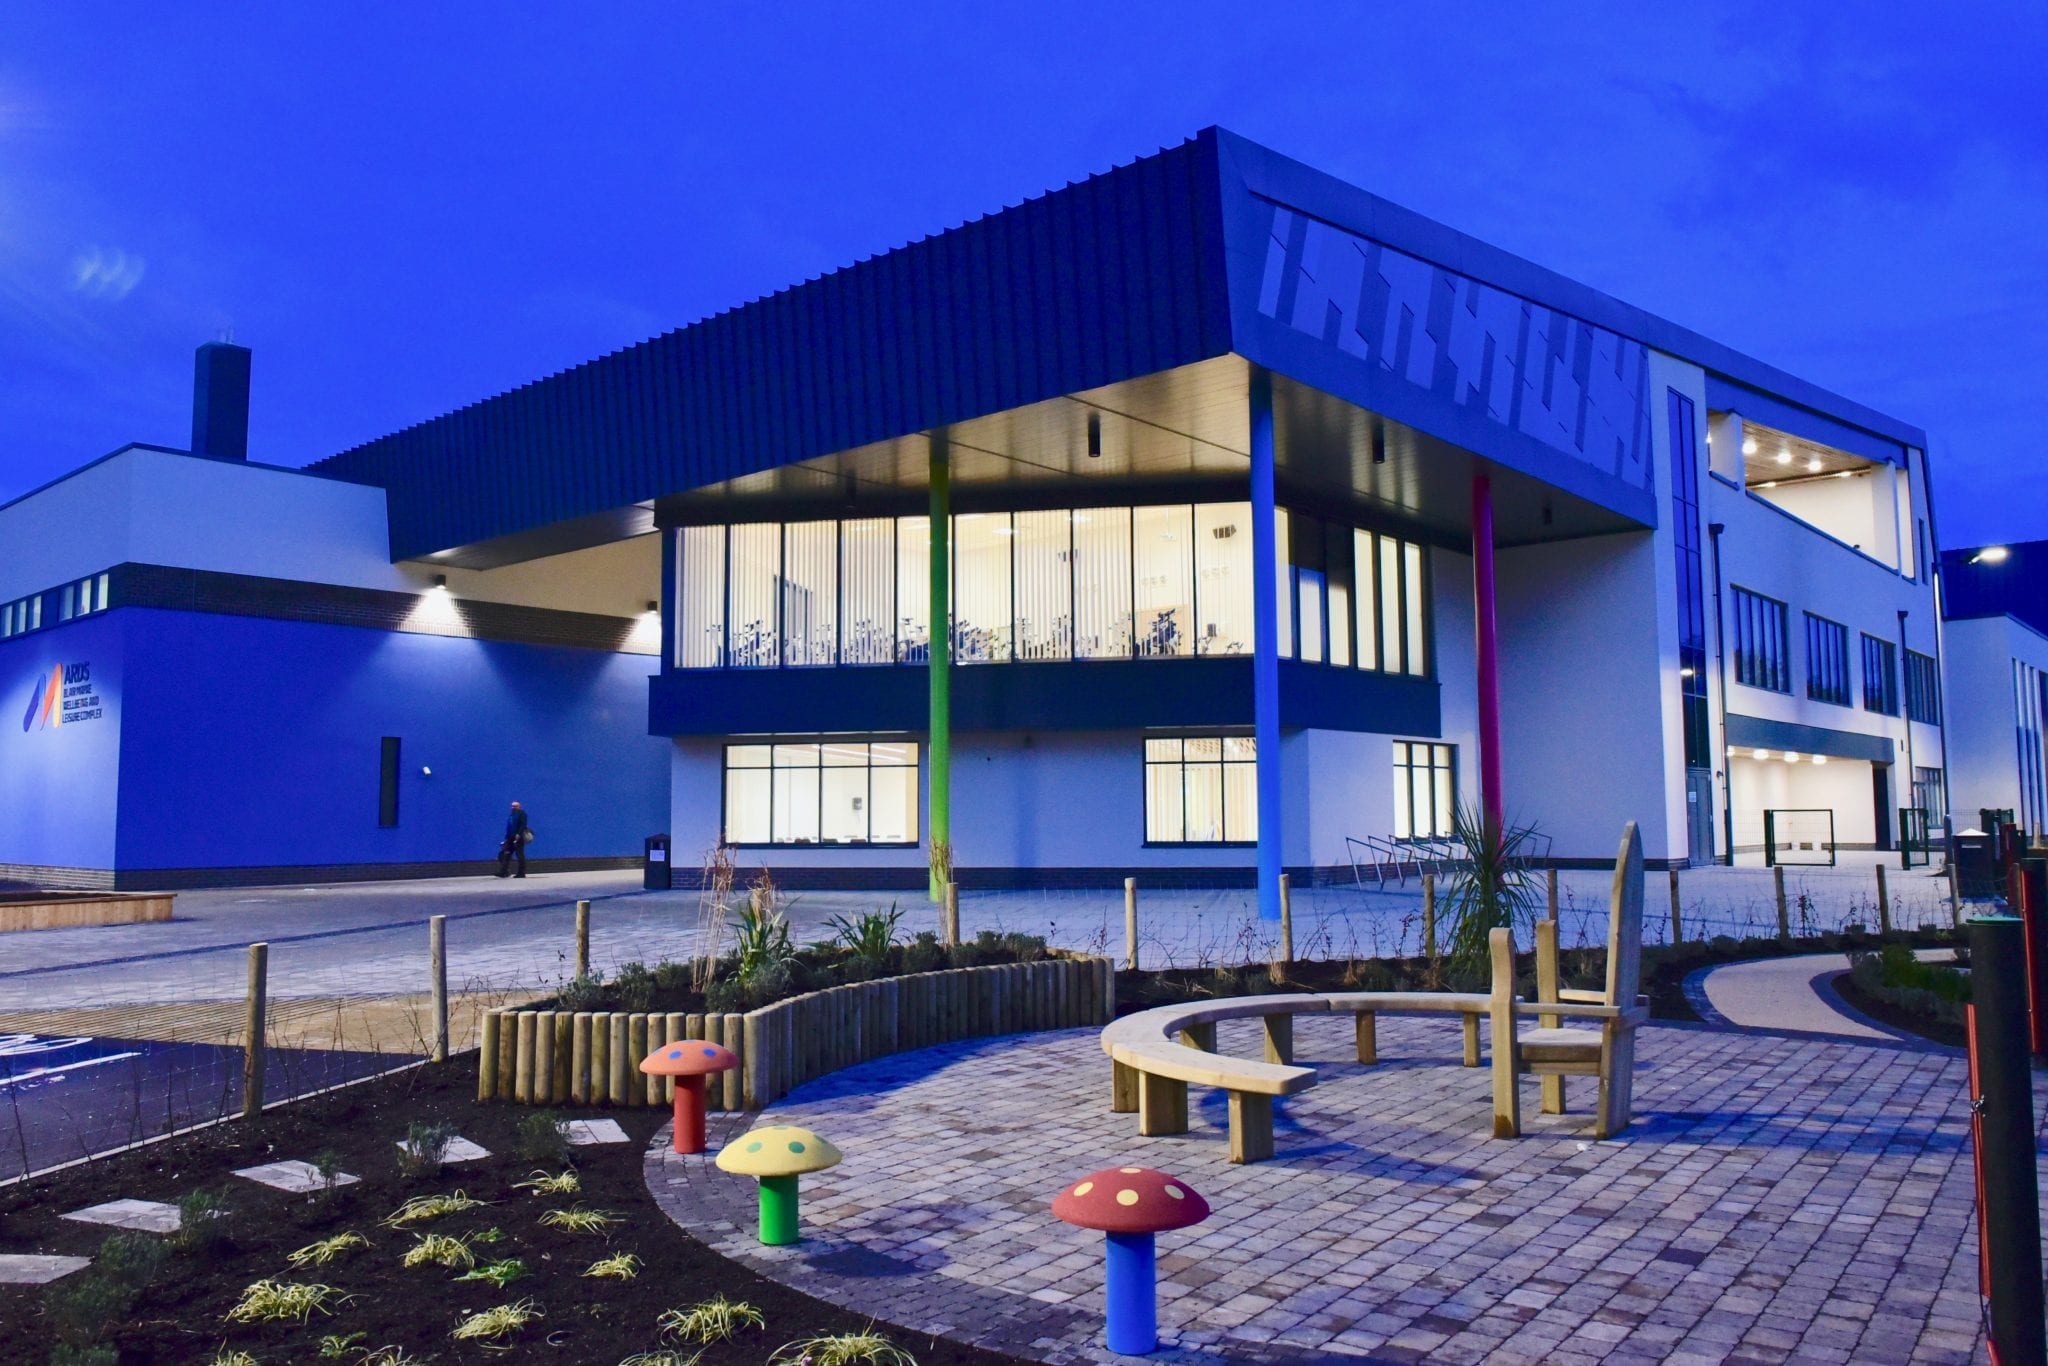 Ards Blair Mayne Wellbeing and Leisure Complex